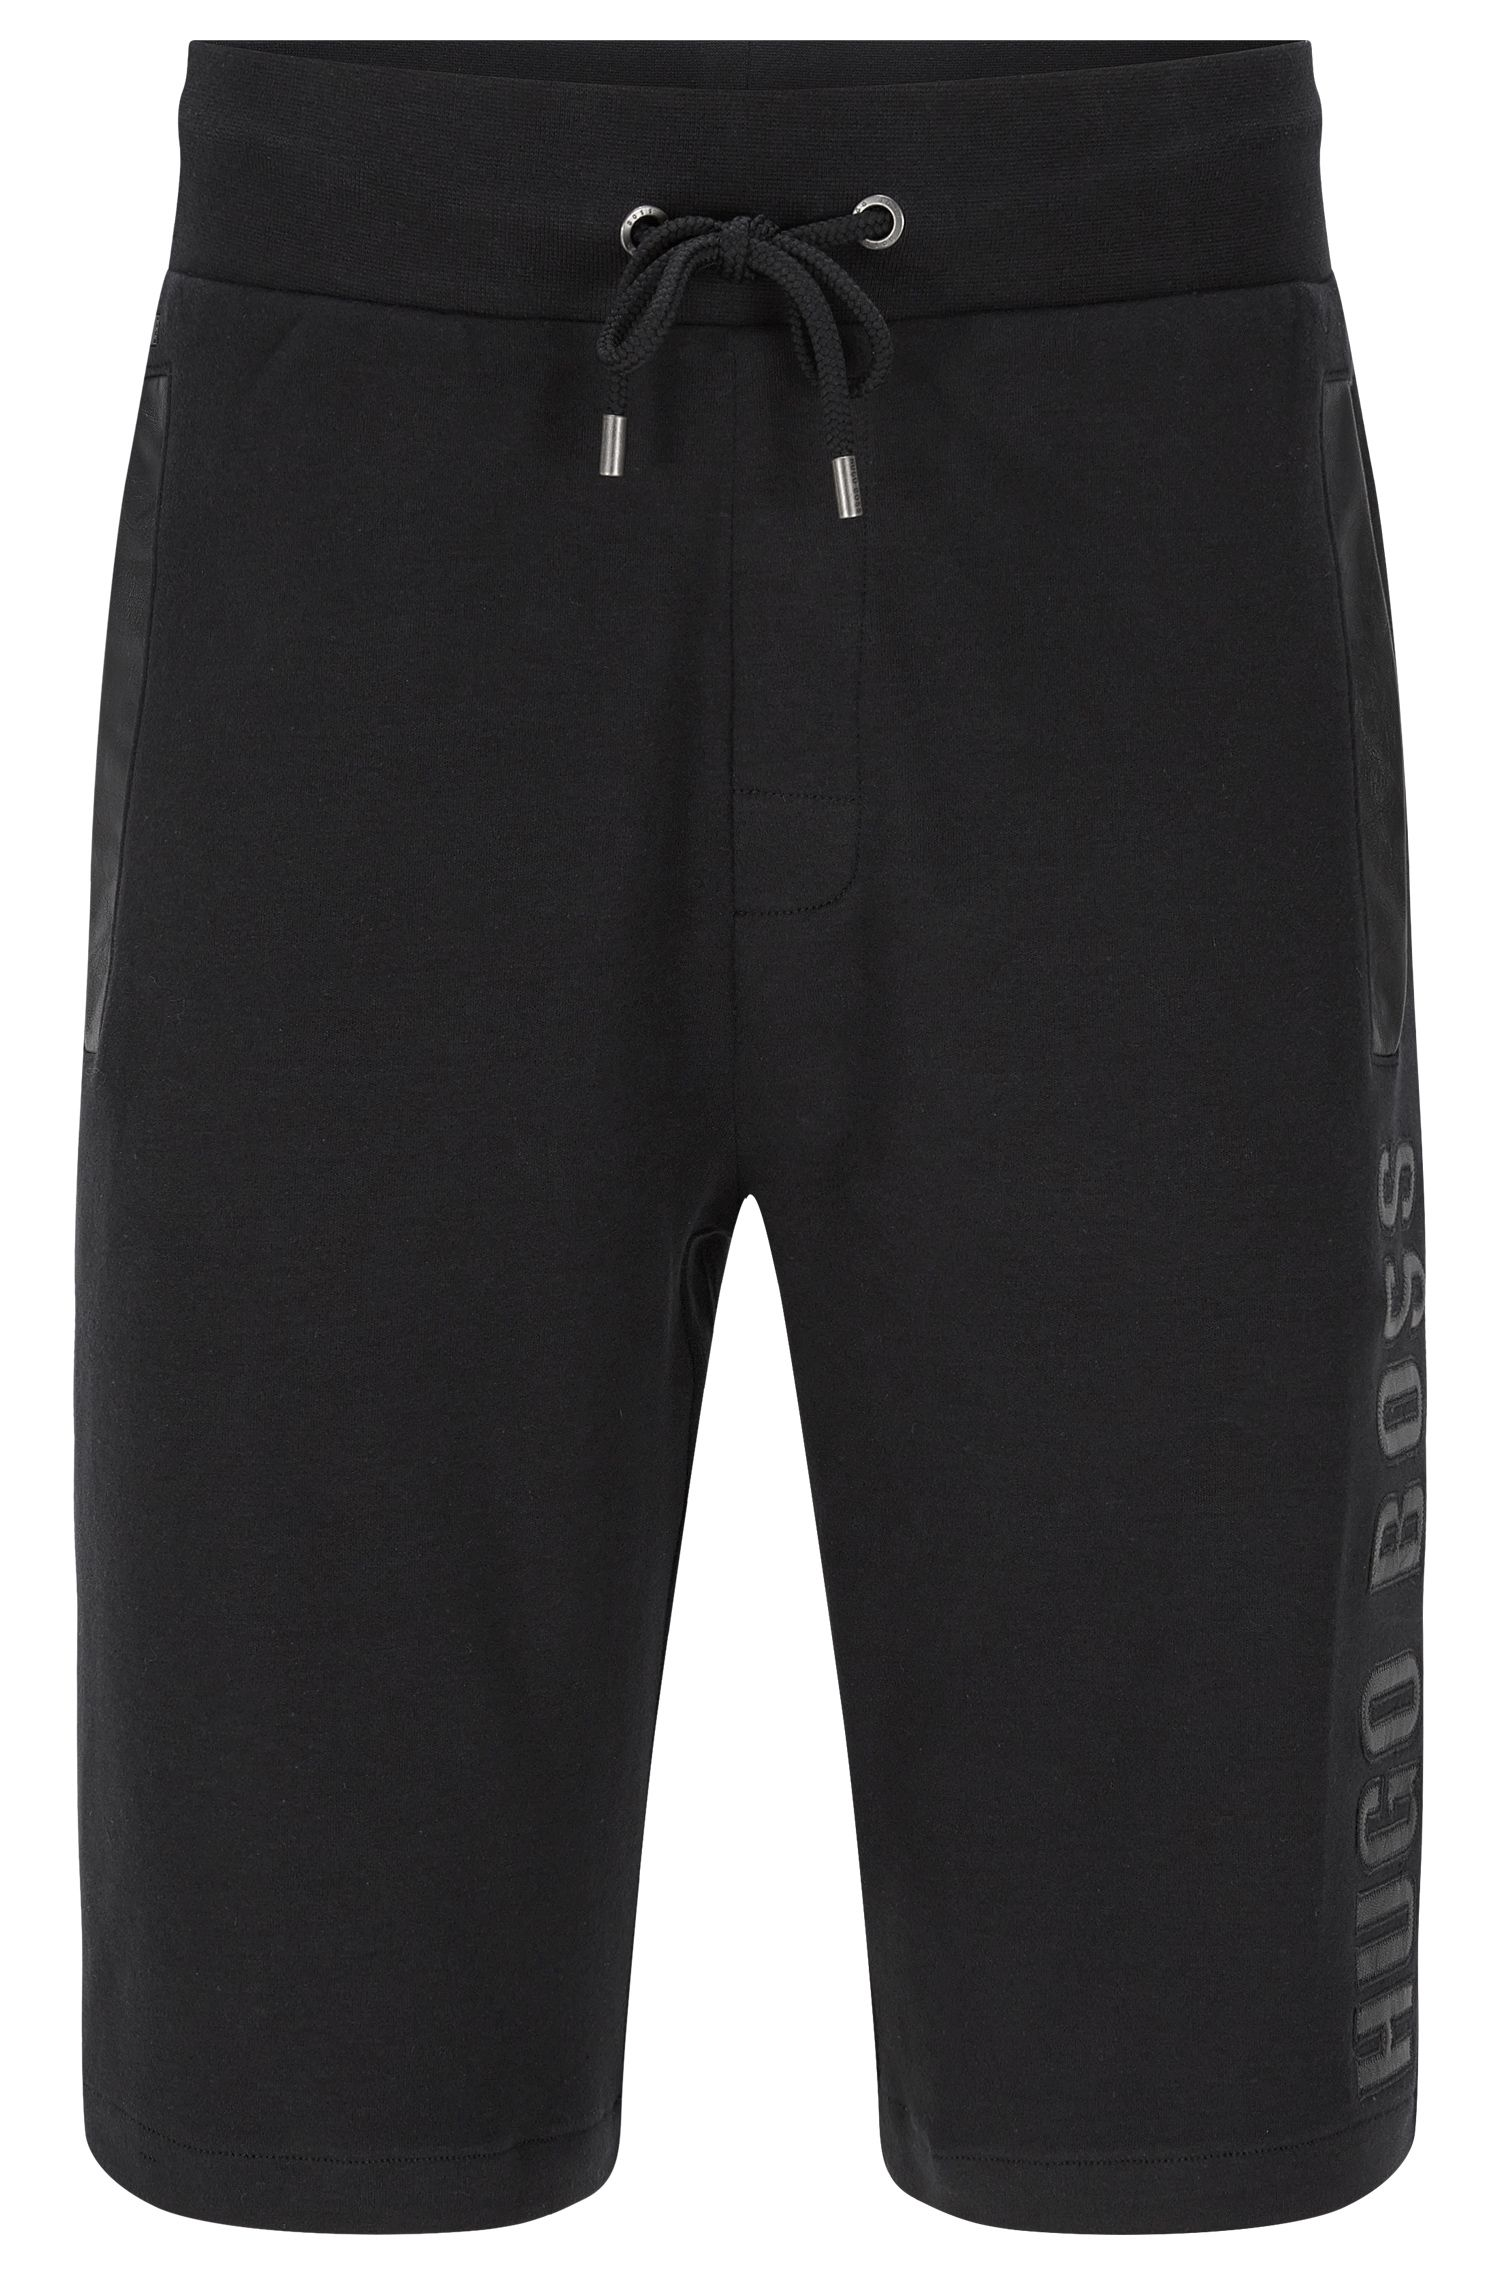 Sweat shorts in cotton with details in leather effect: 'Short Pant'